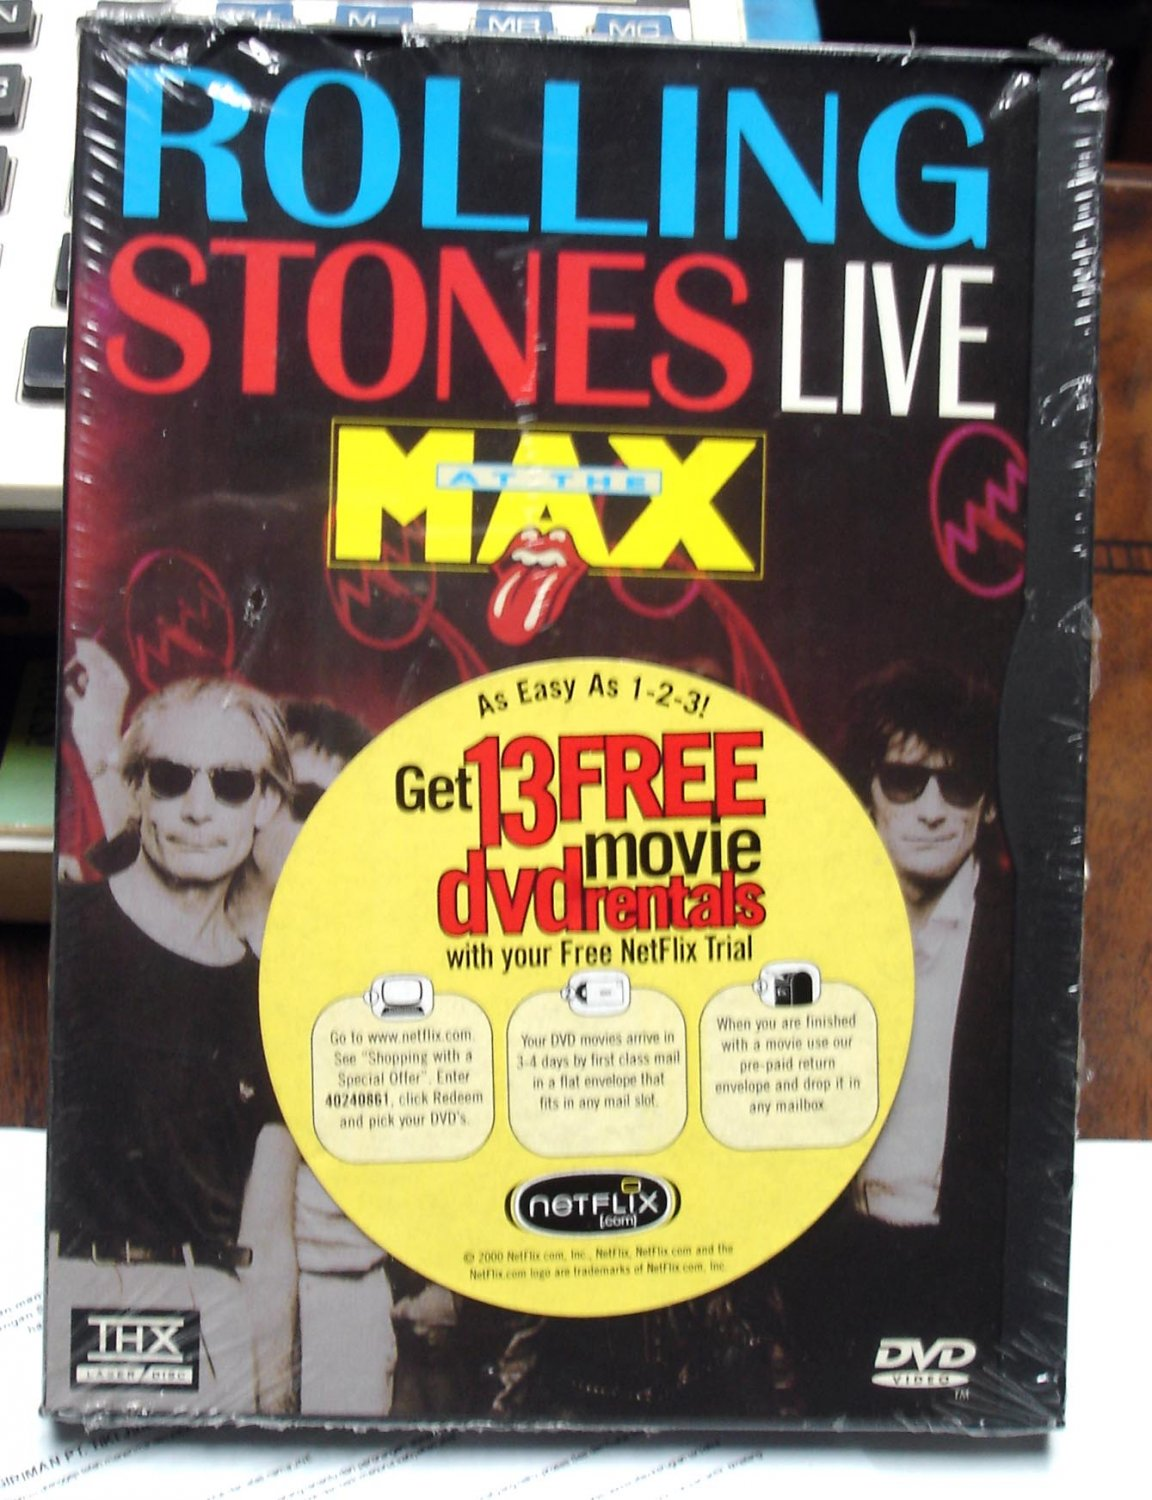 The Rolling Stones Live At The Max DVD